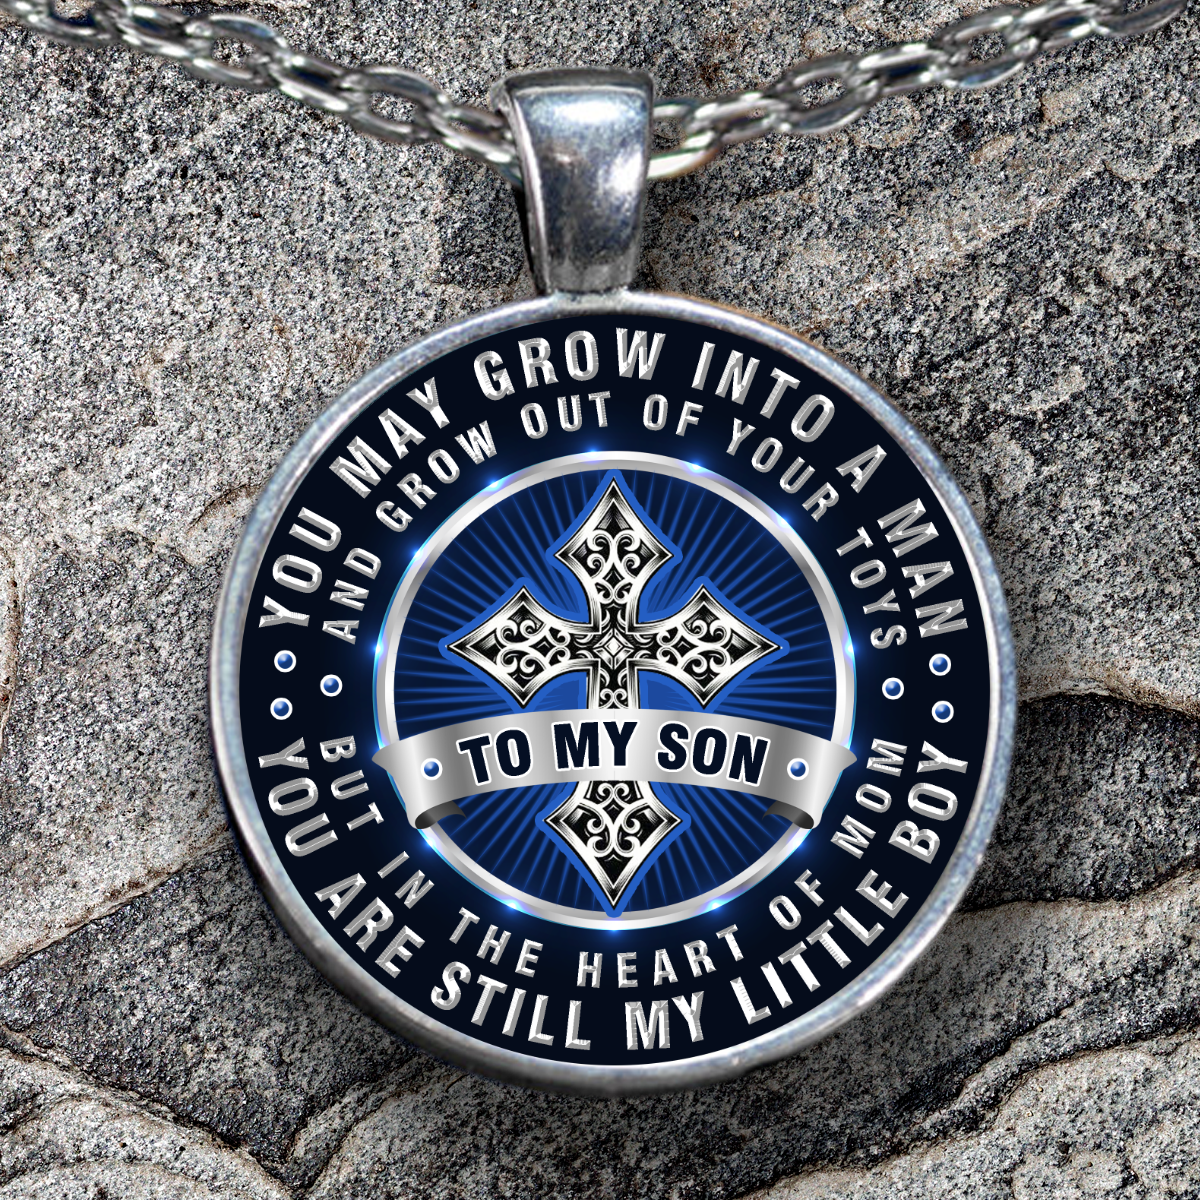 To my son, from mom, you're still my little boy quote pendant necklace To the special little boy who may have grown into a man, but he's still your baby. Let him know with this wonderful pendant necklace, only available for a limited time! #littleboyquotes